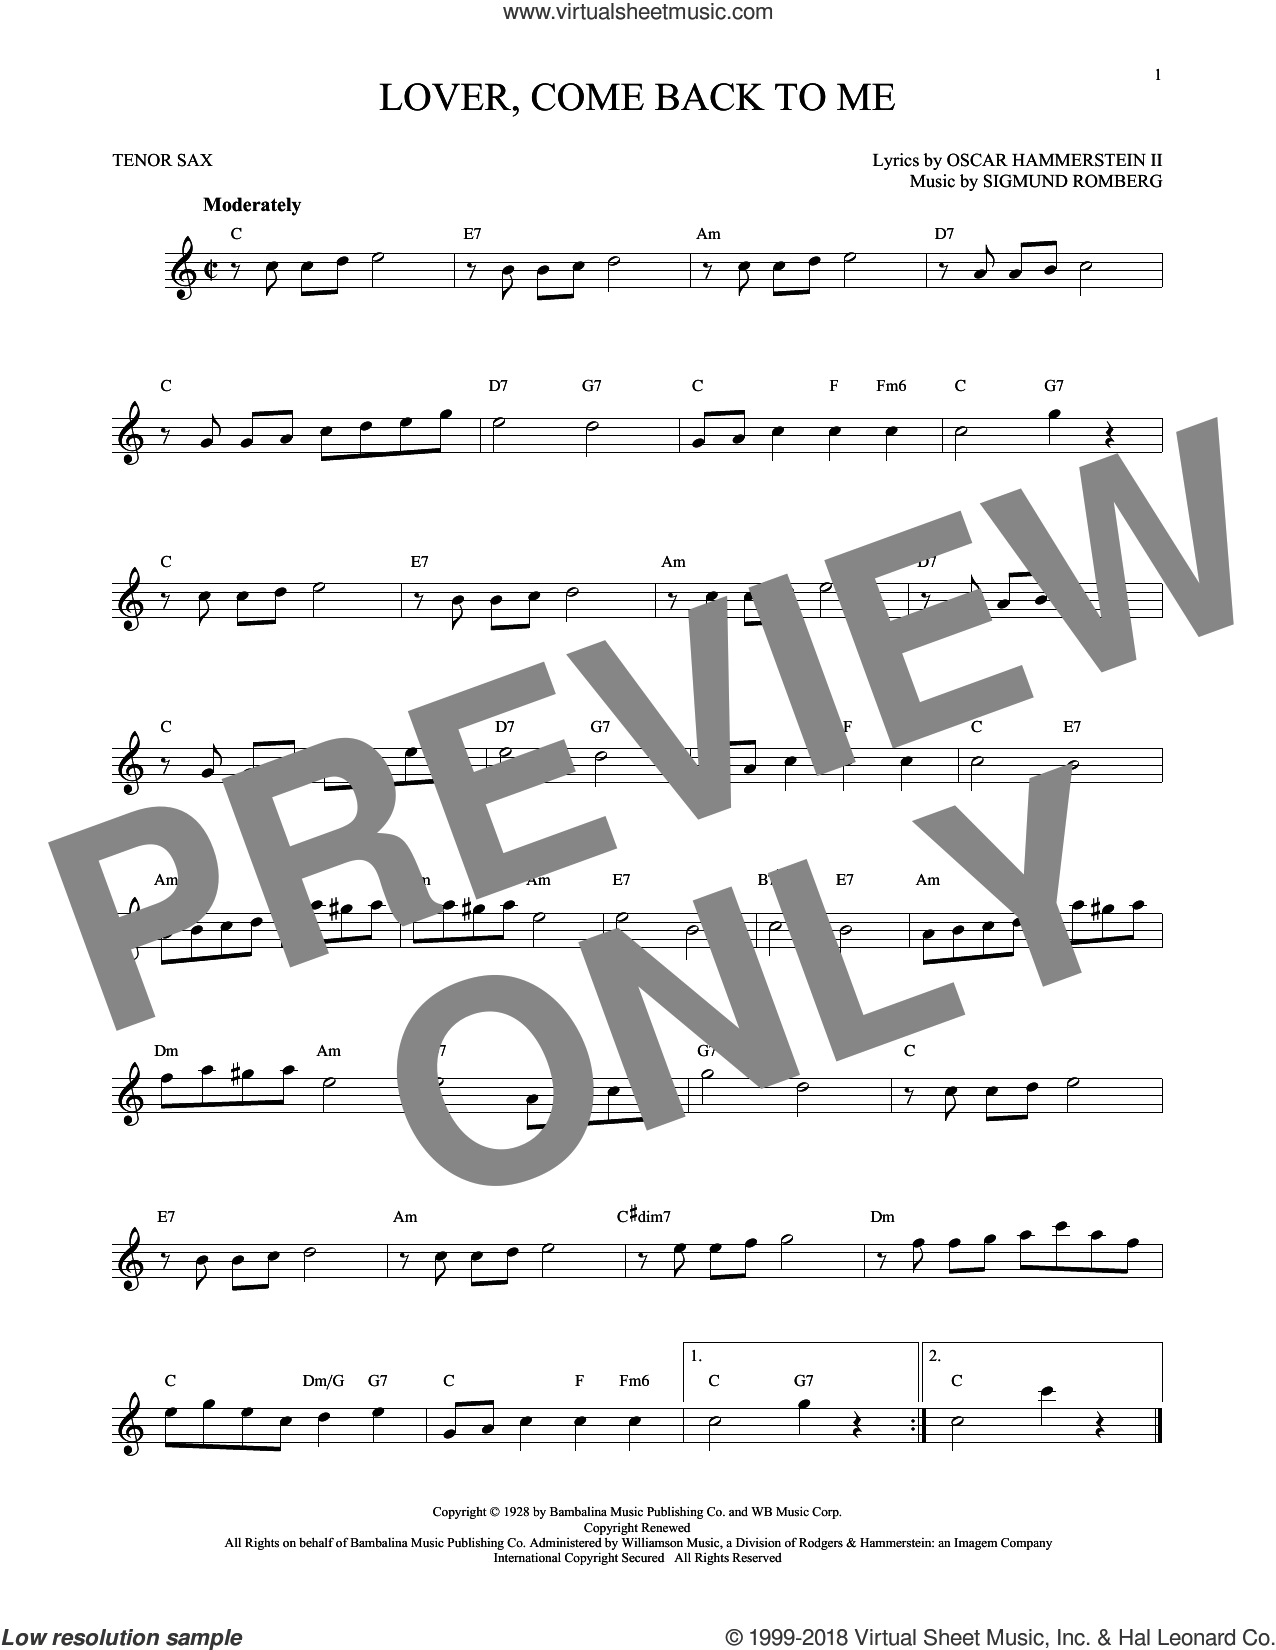 Lover, Come Back To Me sheet music for tenor saxophone solo by Oscar II Hammerstein and Sigmund Romberg, intermediate skill level